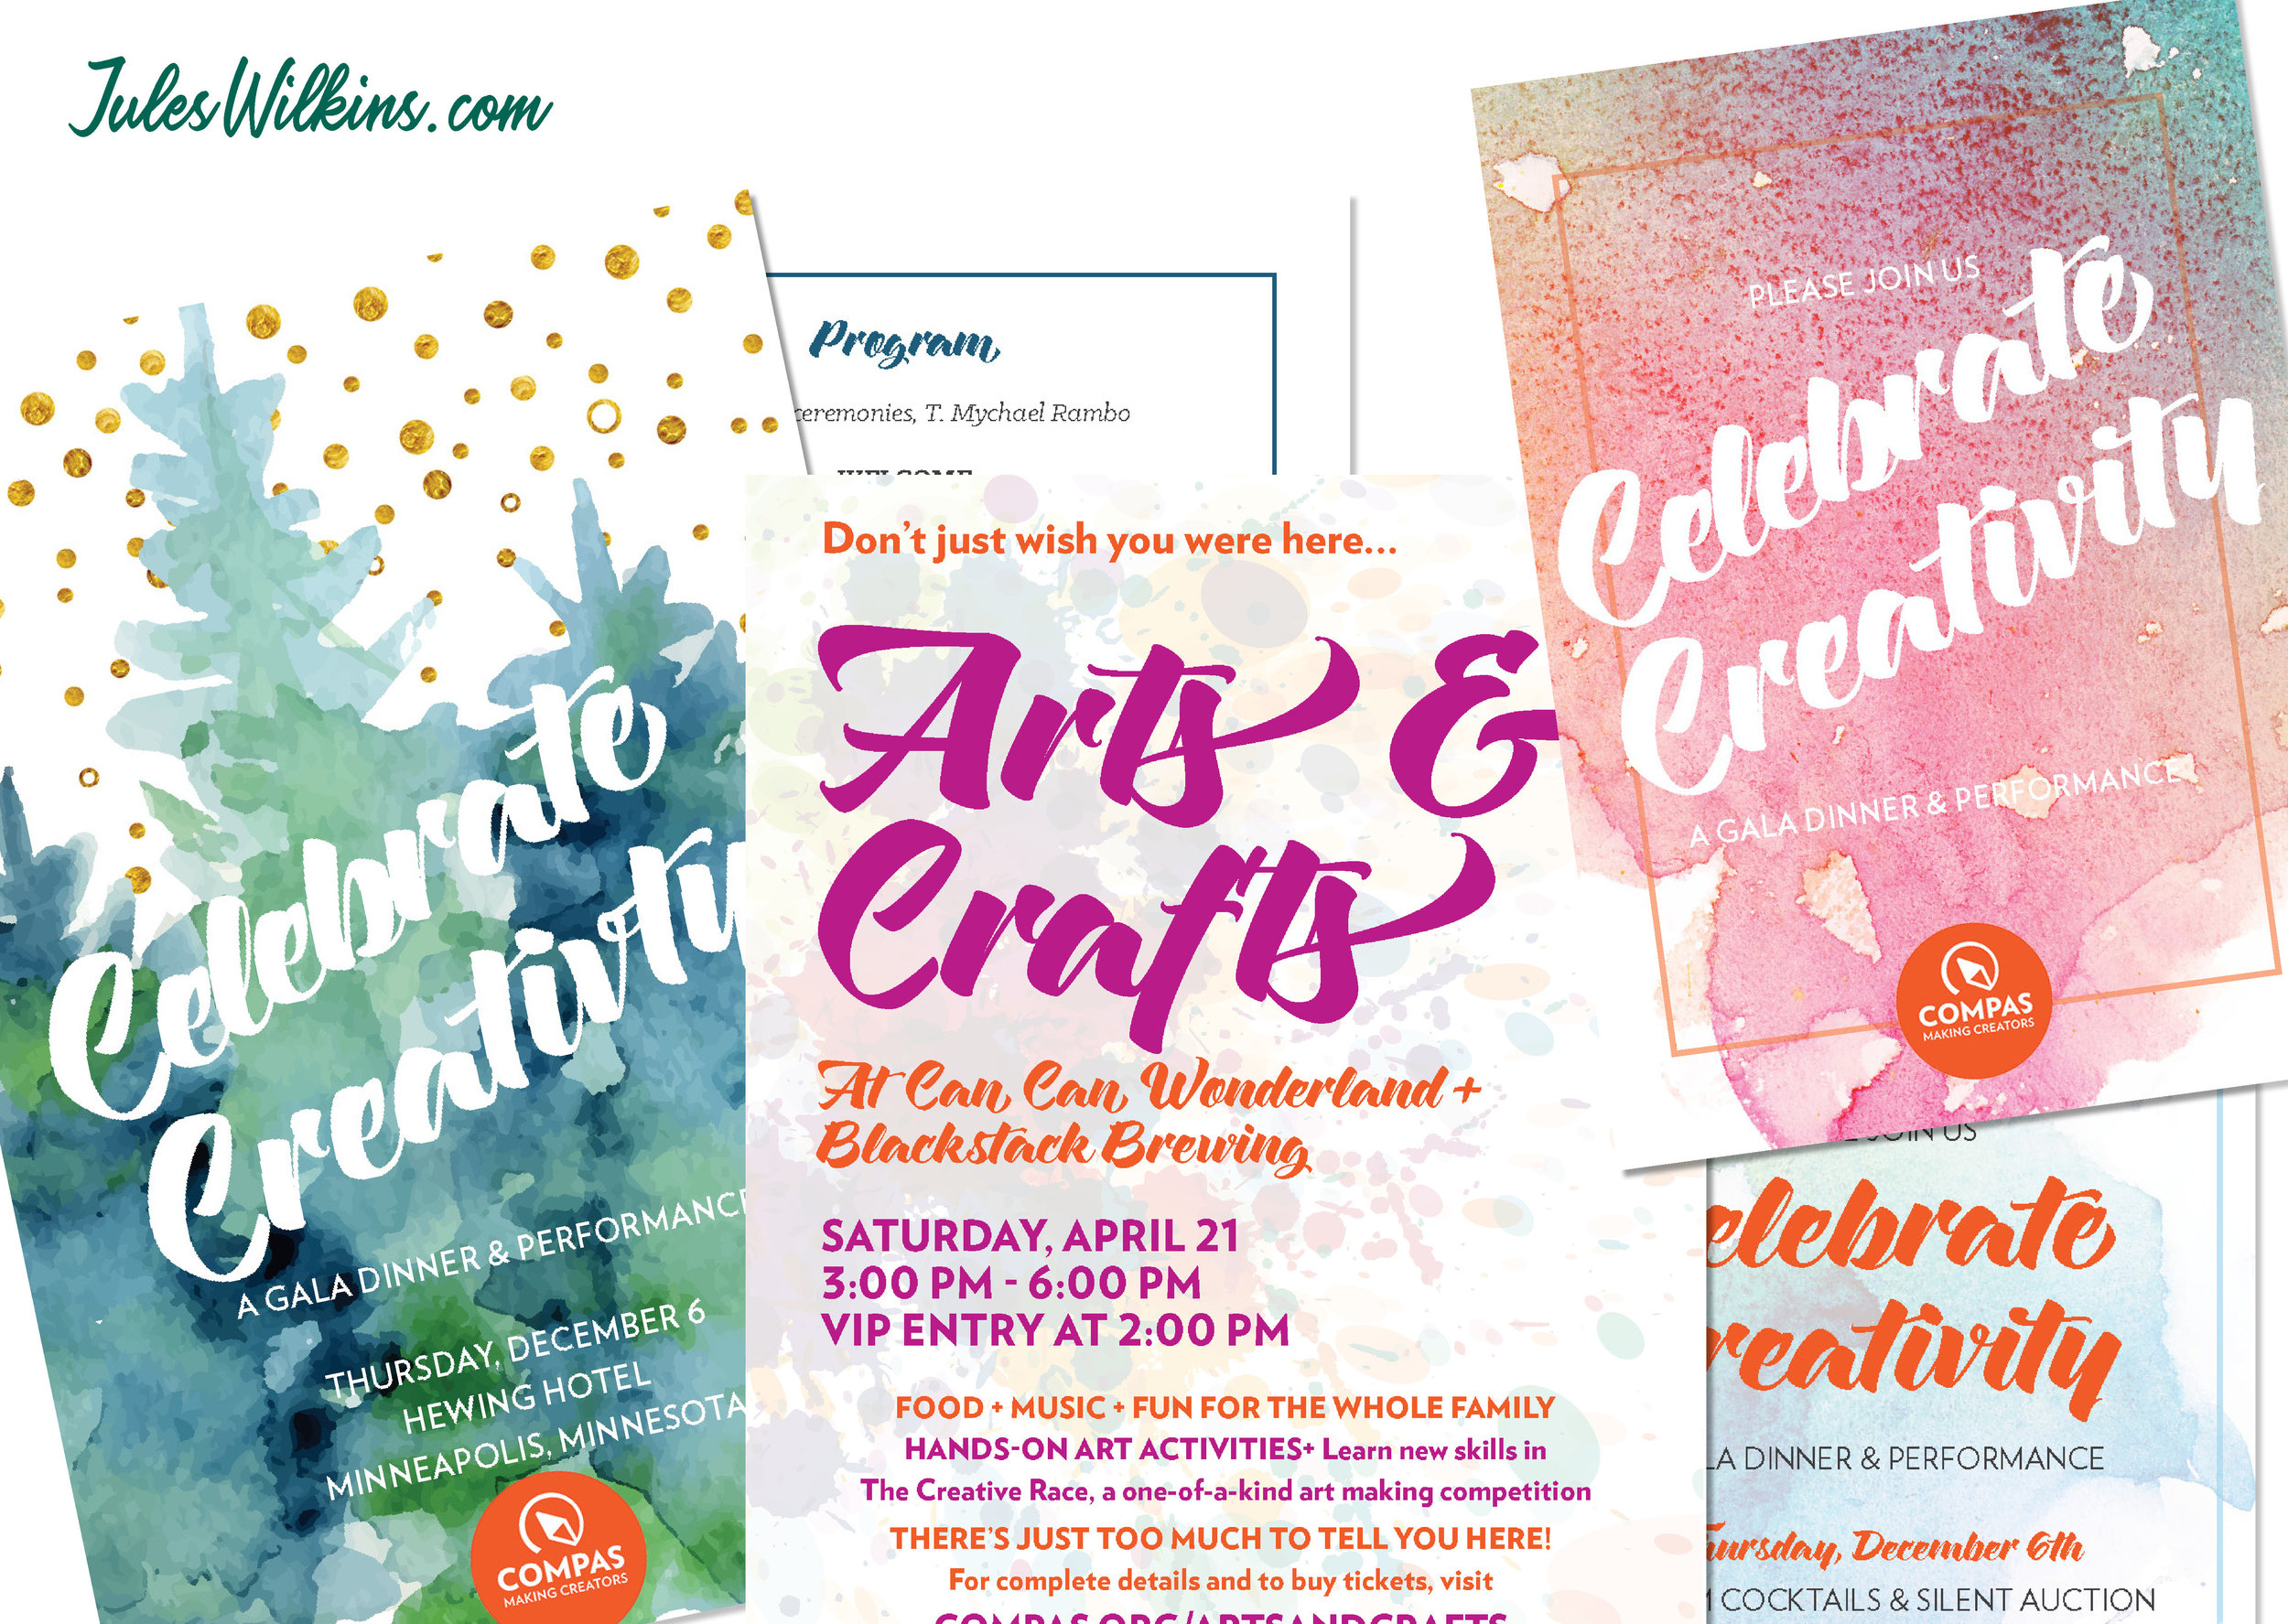 Events - Get the invitations, programs, and other event materials you need to set your fundraising event apart.